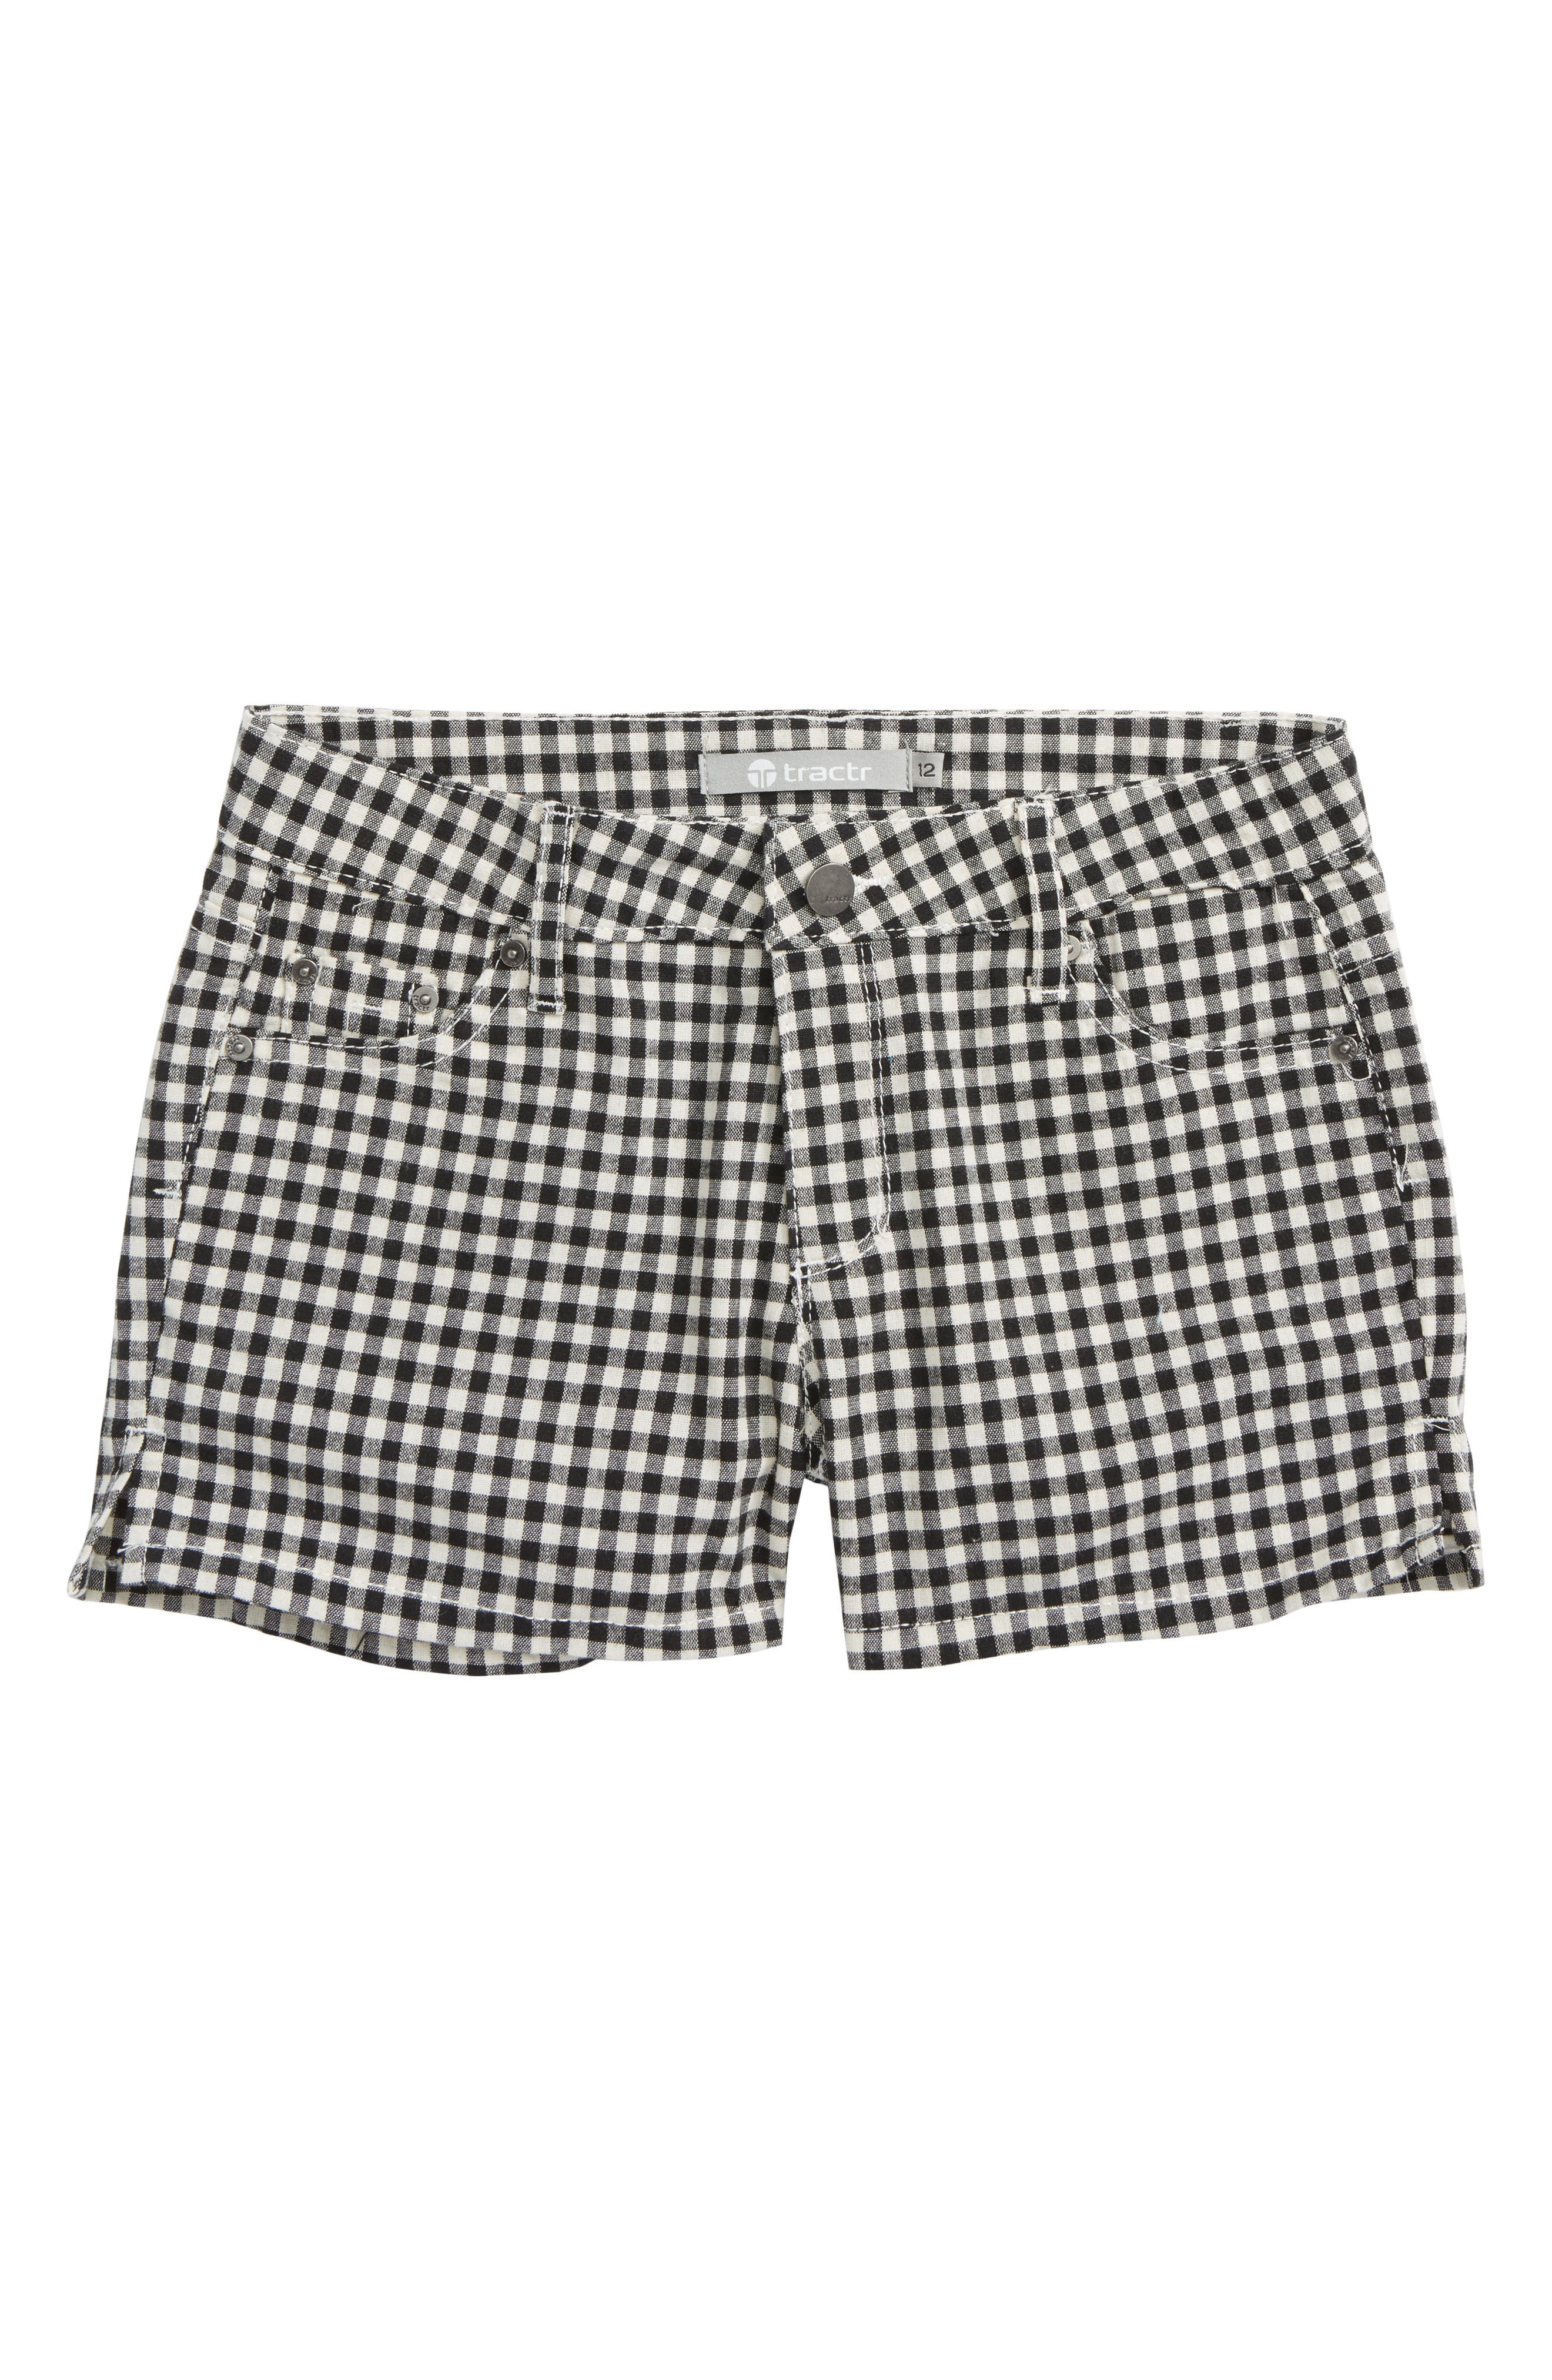 Main Image - Tractr Gingham Shorts (Big Girls)